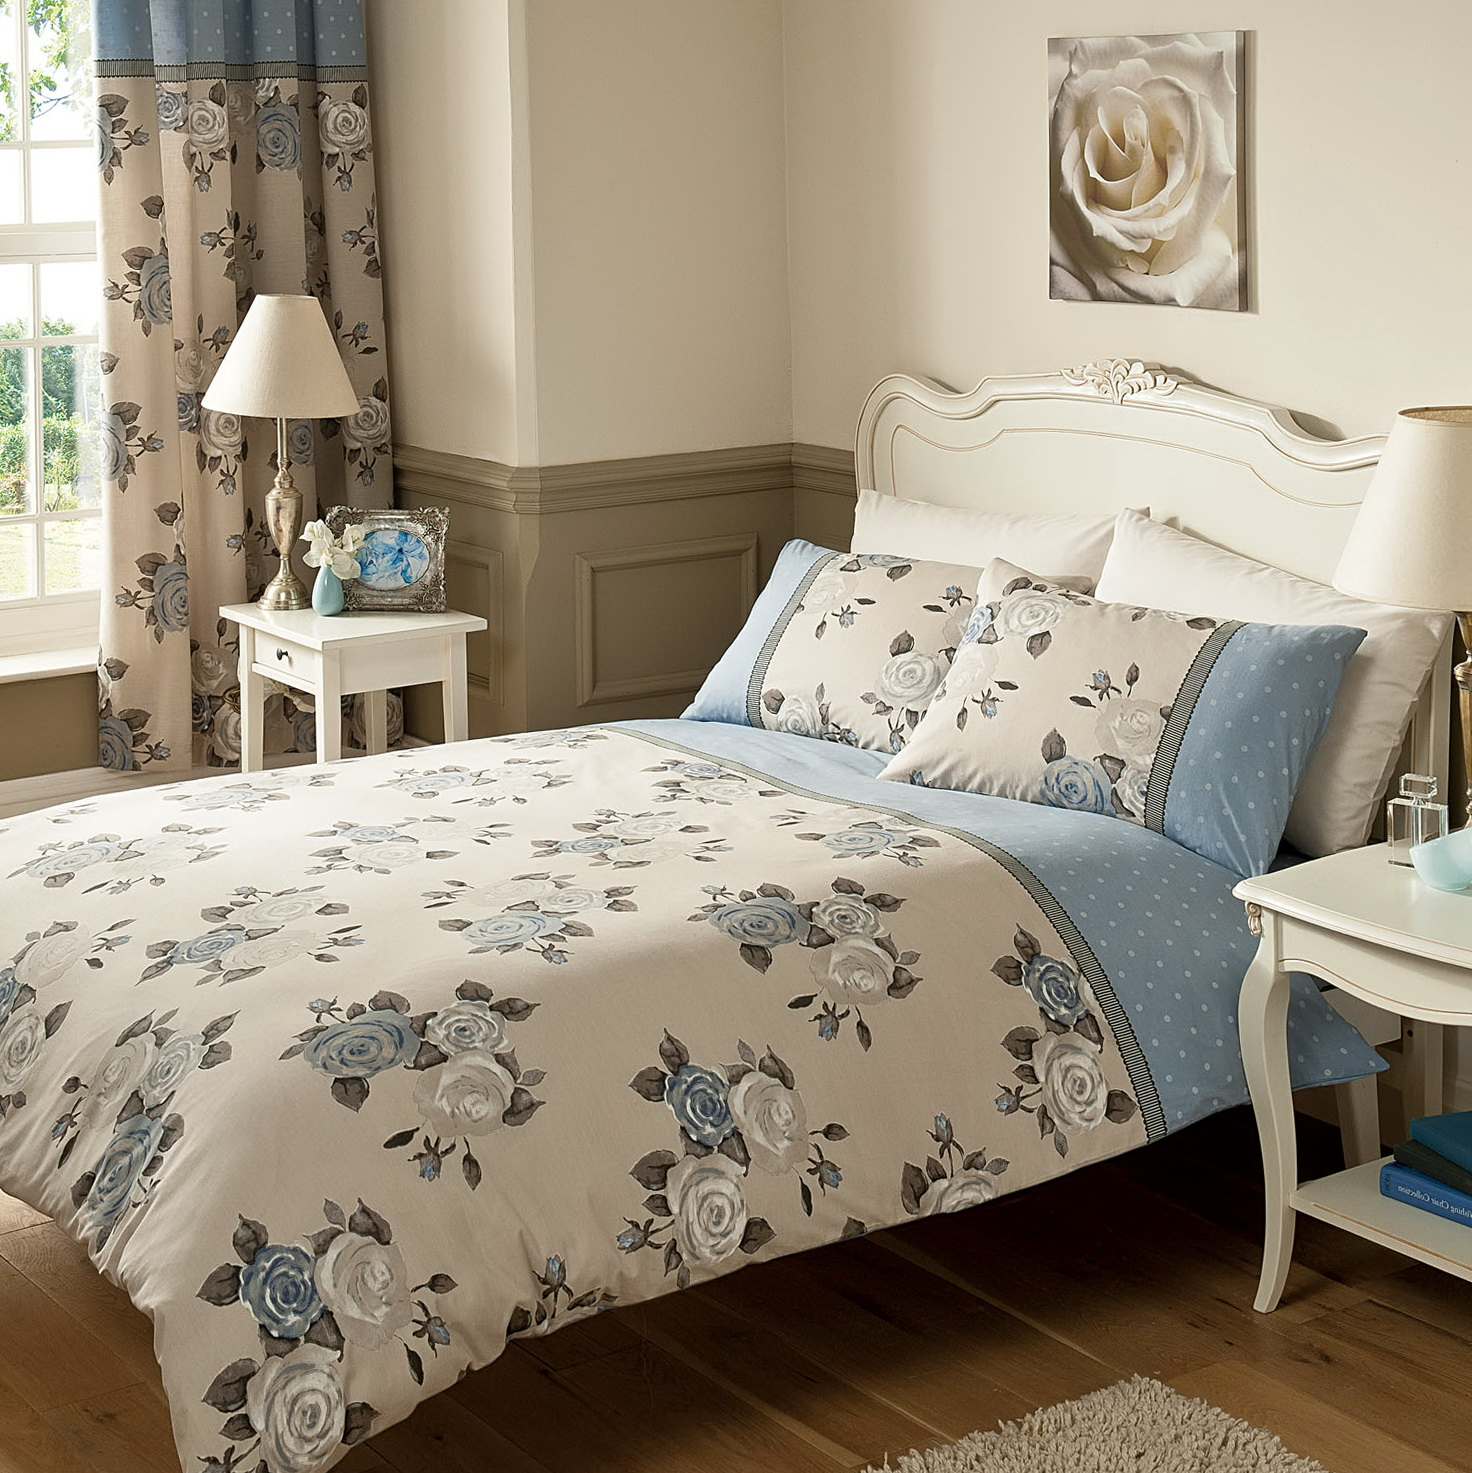 Comforter Sets With Curtains Included Home Design Ideas